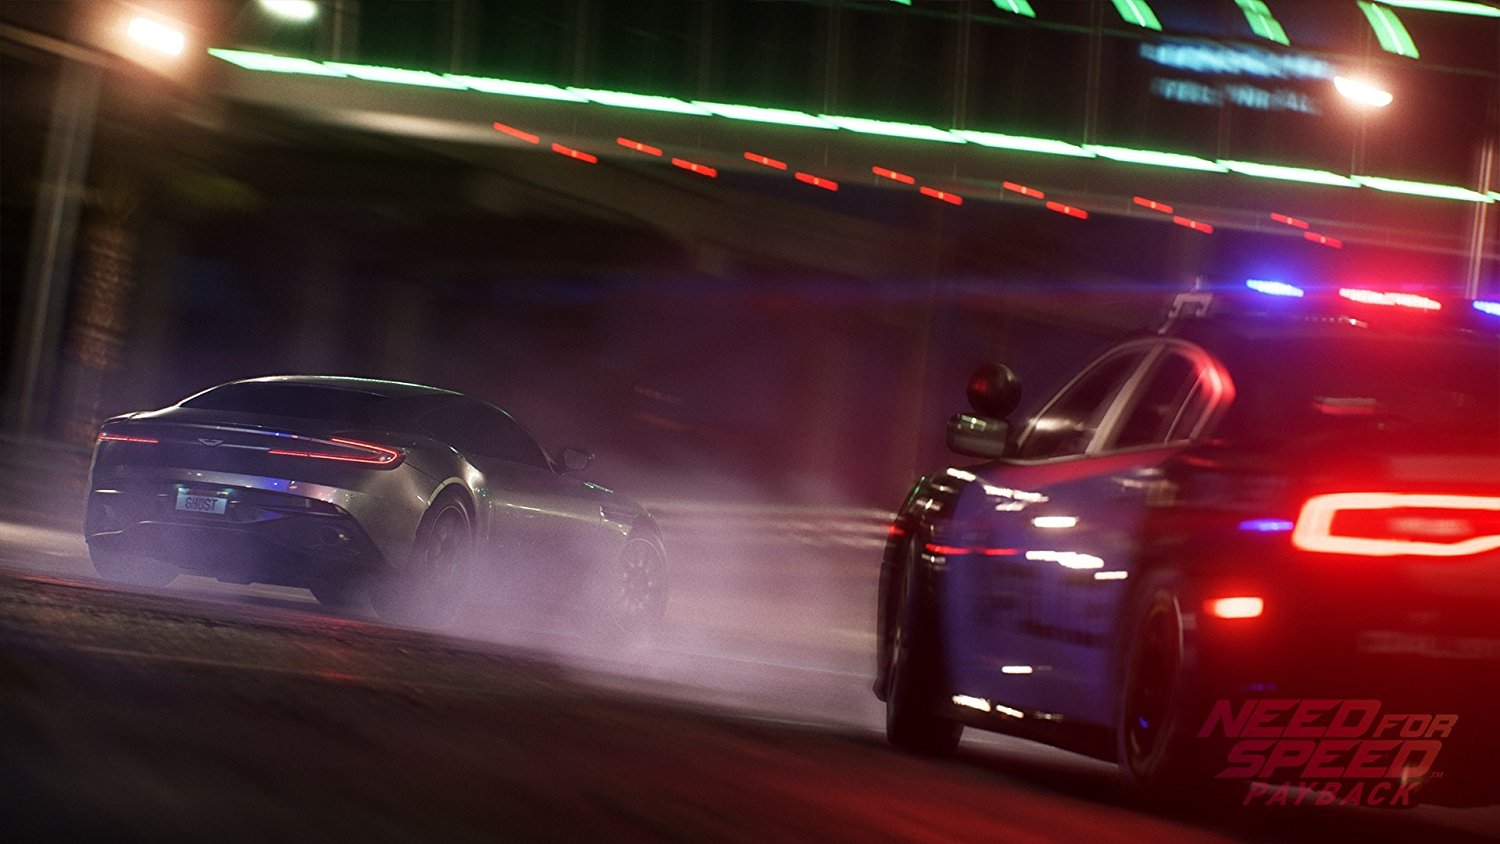 Need For Speed Payback Controls Wonderfully It Is Not Realistic Handling As Expected But Can Be Fun To Drive Around In The Game